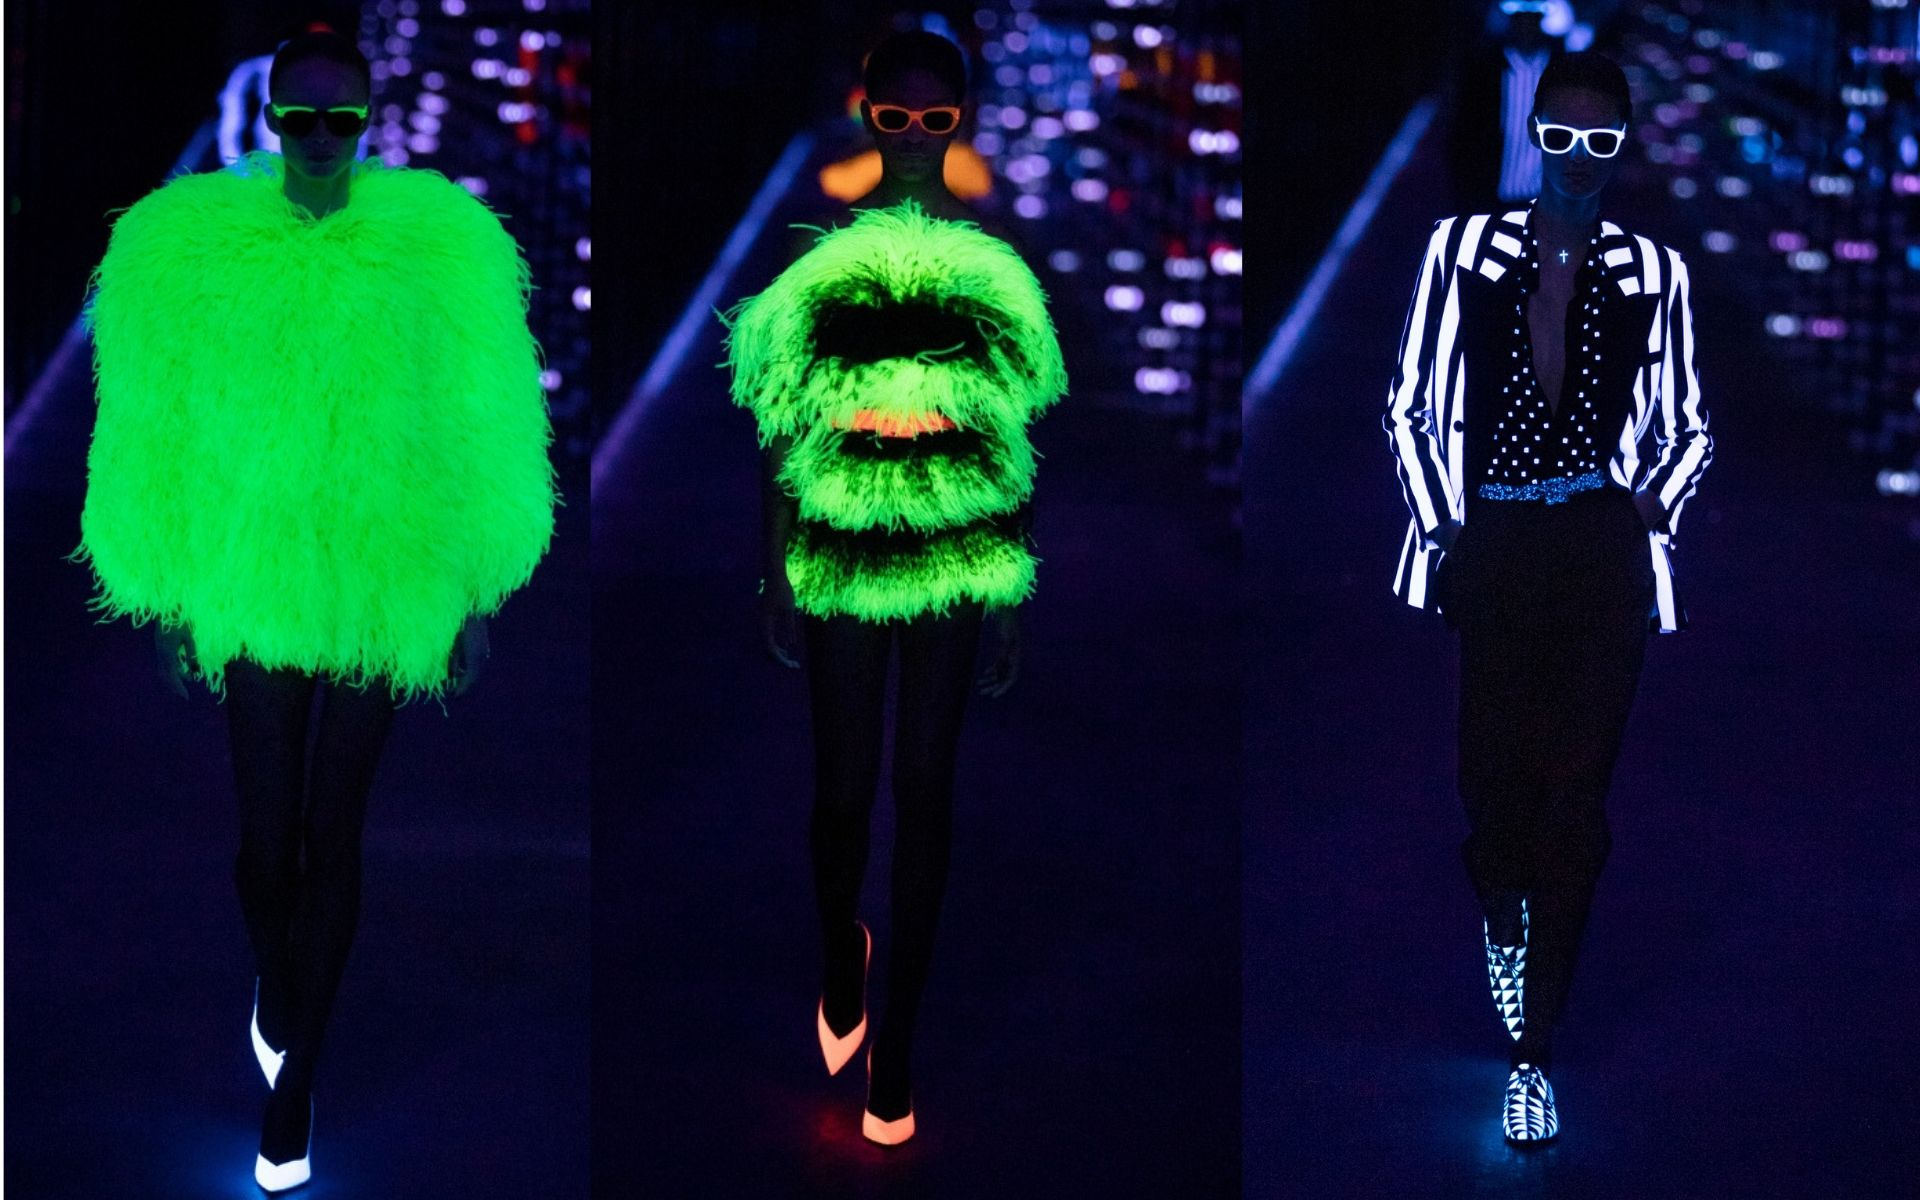 It's Lit! The 90s Glow-In-The-Dark Trend Is Making A Comeback